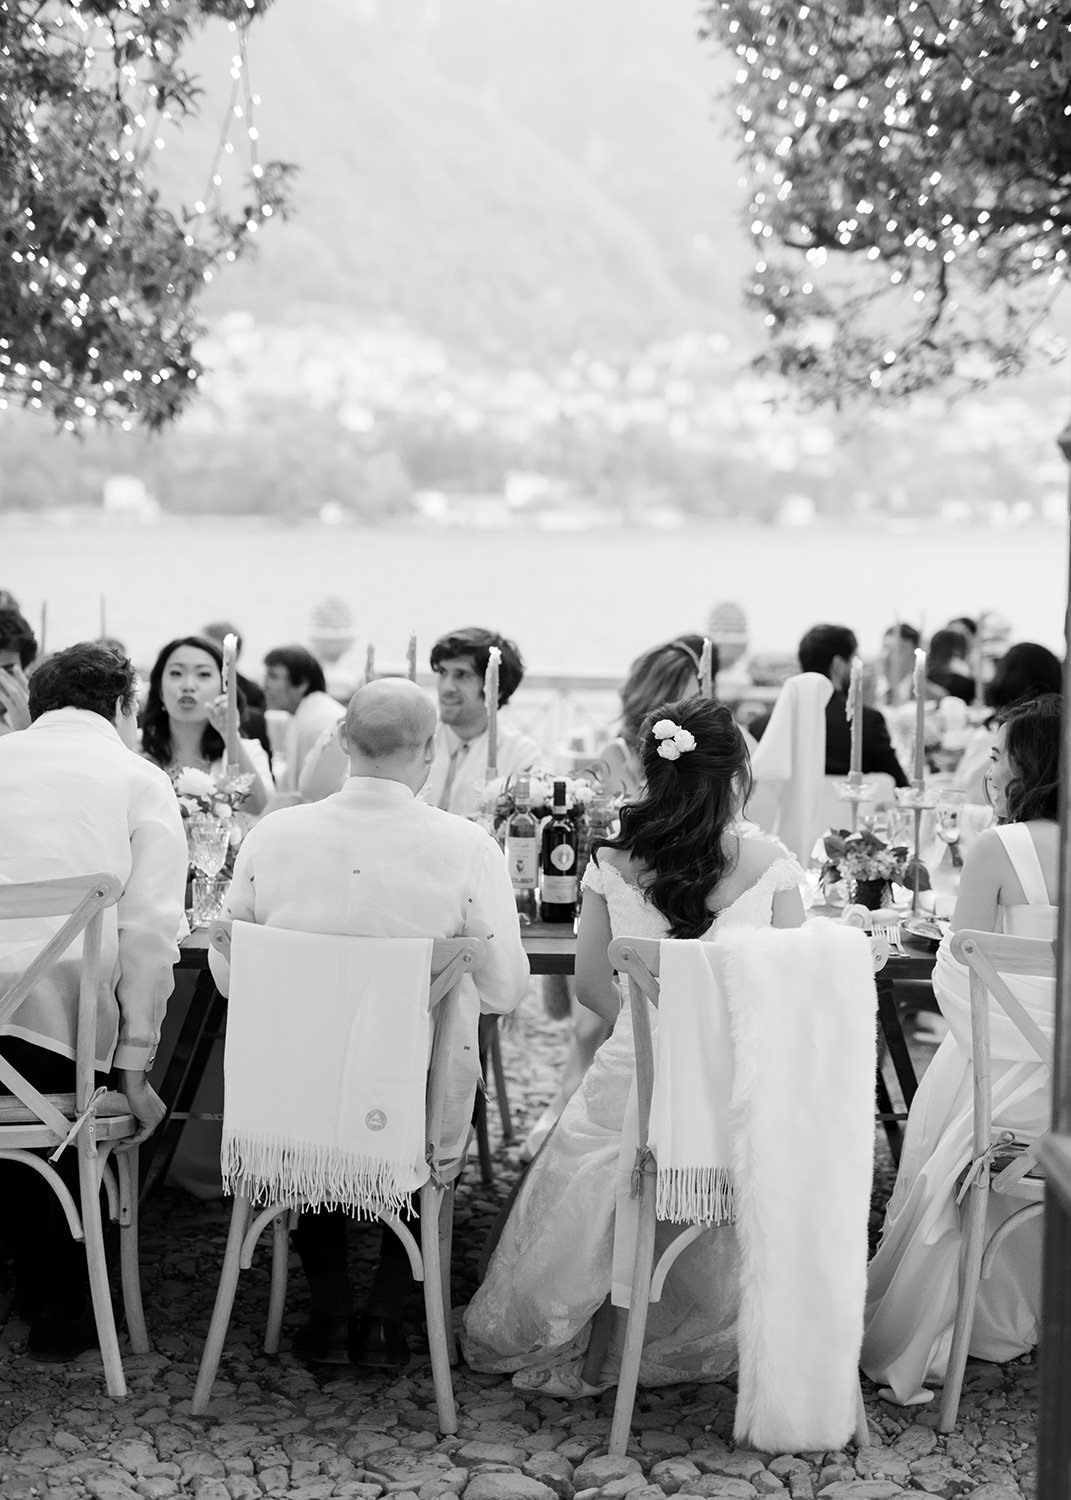 villa-regina-teodolinda-wedding-photographer-C&B-©bottega53-103.JPG